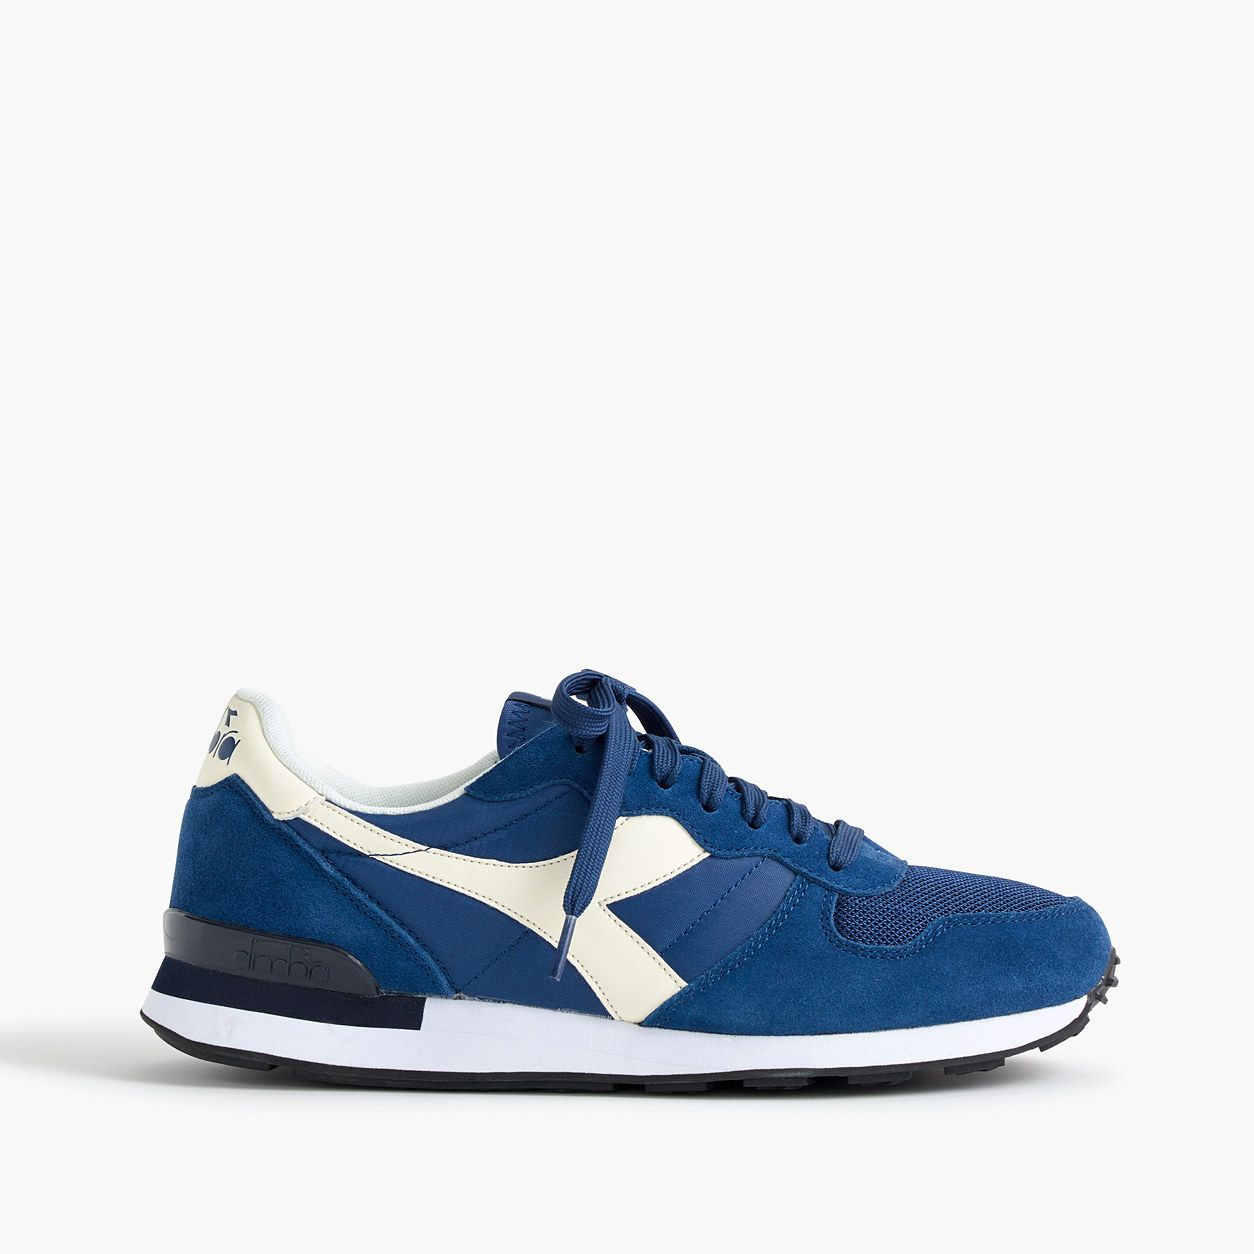 60dcd043 J.Crew Mens Diadora Camaro Sneakers (Size 10.5 M) | Products ...